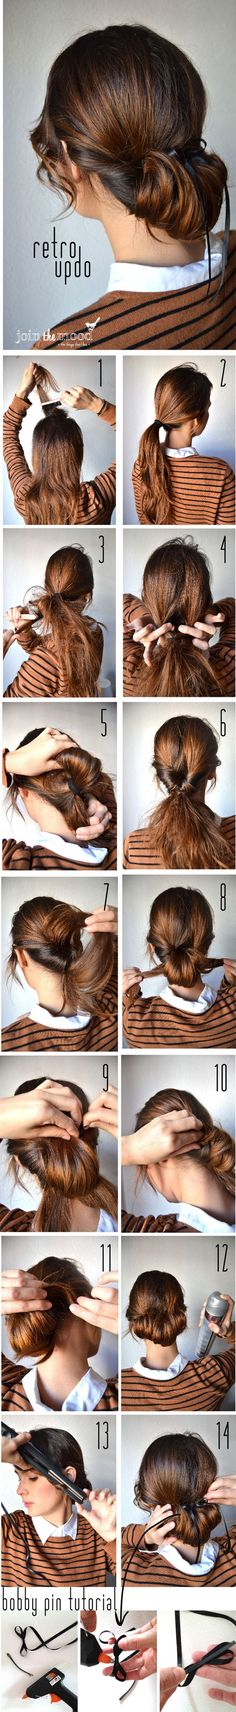 A Retro-Updo   This old-school style is so chic, plus the step-by-step tutorial means anyone can pull it off. It'd be perfect for a lazy Sunday when you're running errands but still want to look pulled together, but I'd skip the little black ribbon